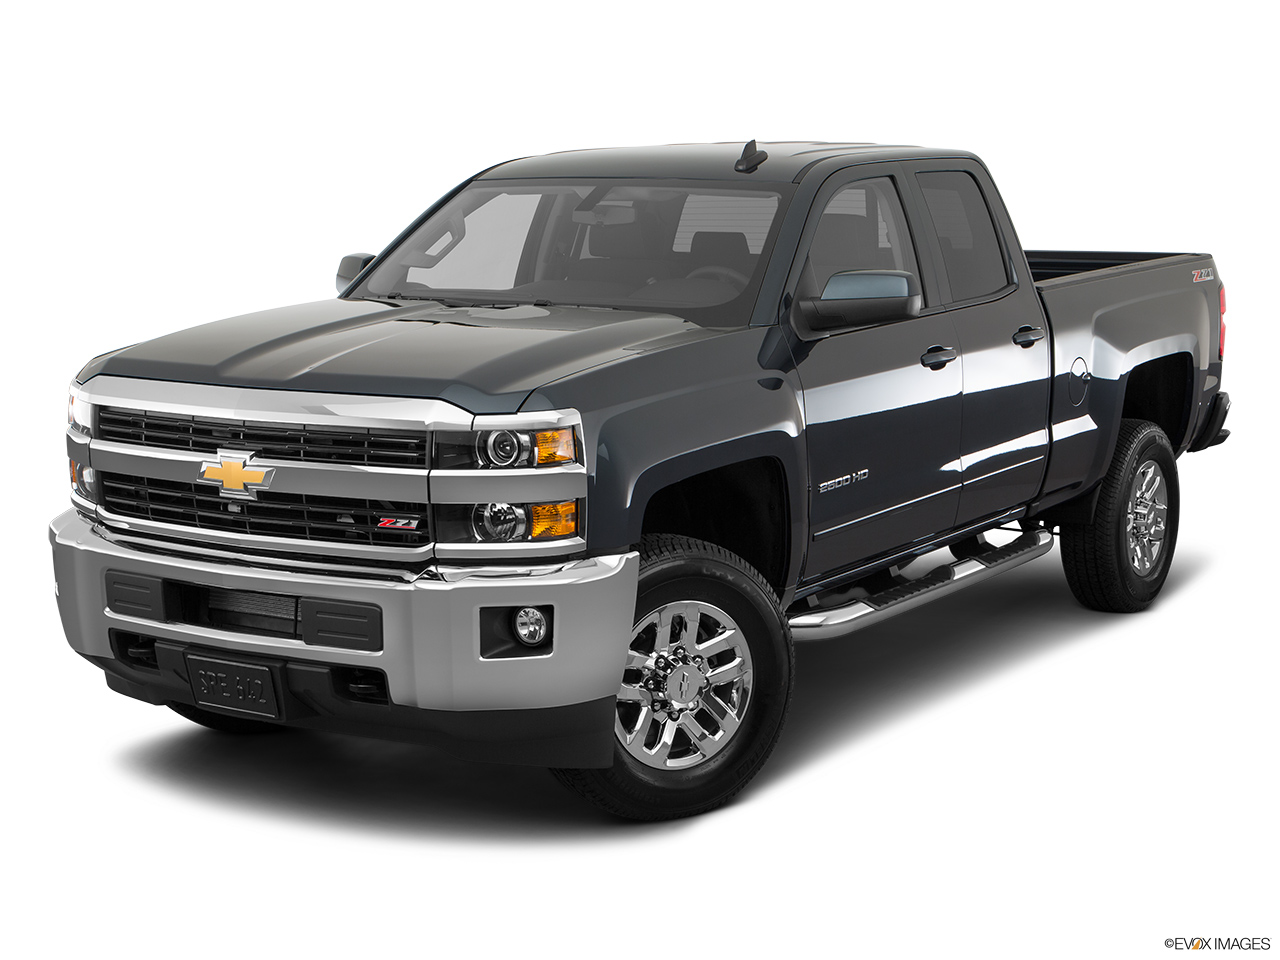 2017 Chevrolet Silverado Prices In Bahrain Gulf Specs